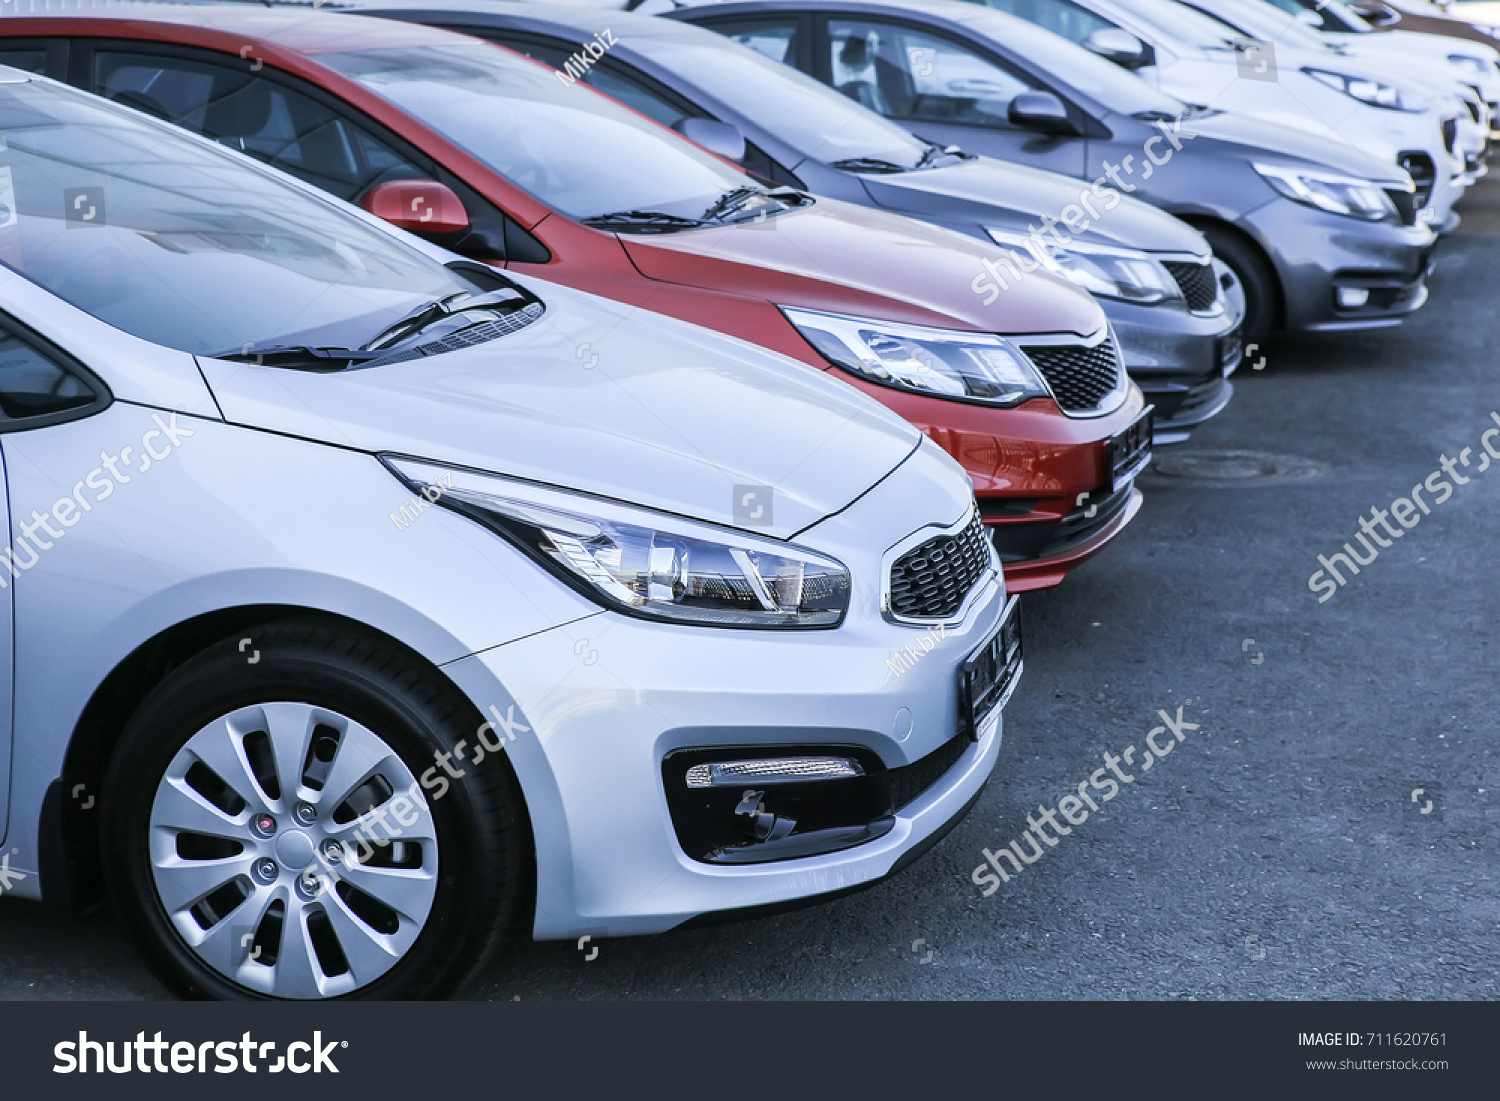 Cars For Sale Stock Lot Row. Car Dealer Inventory #711620761